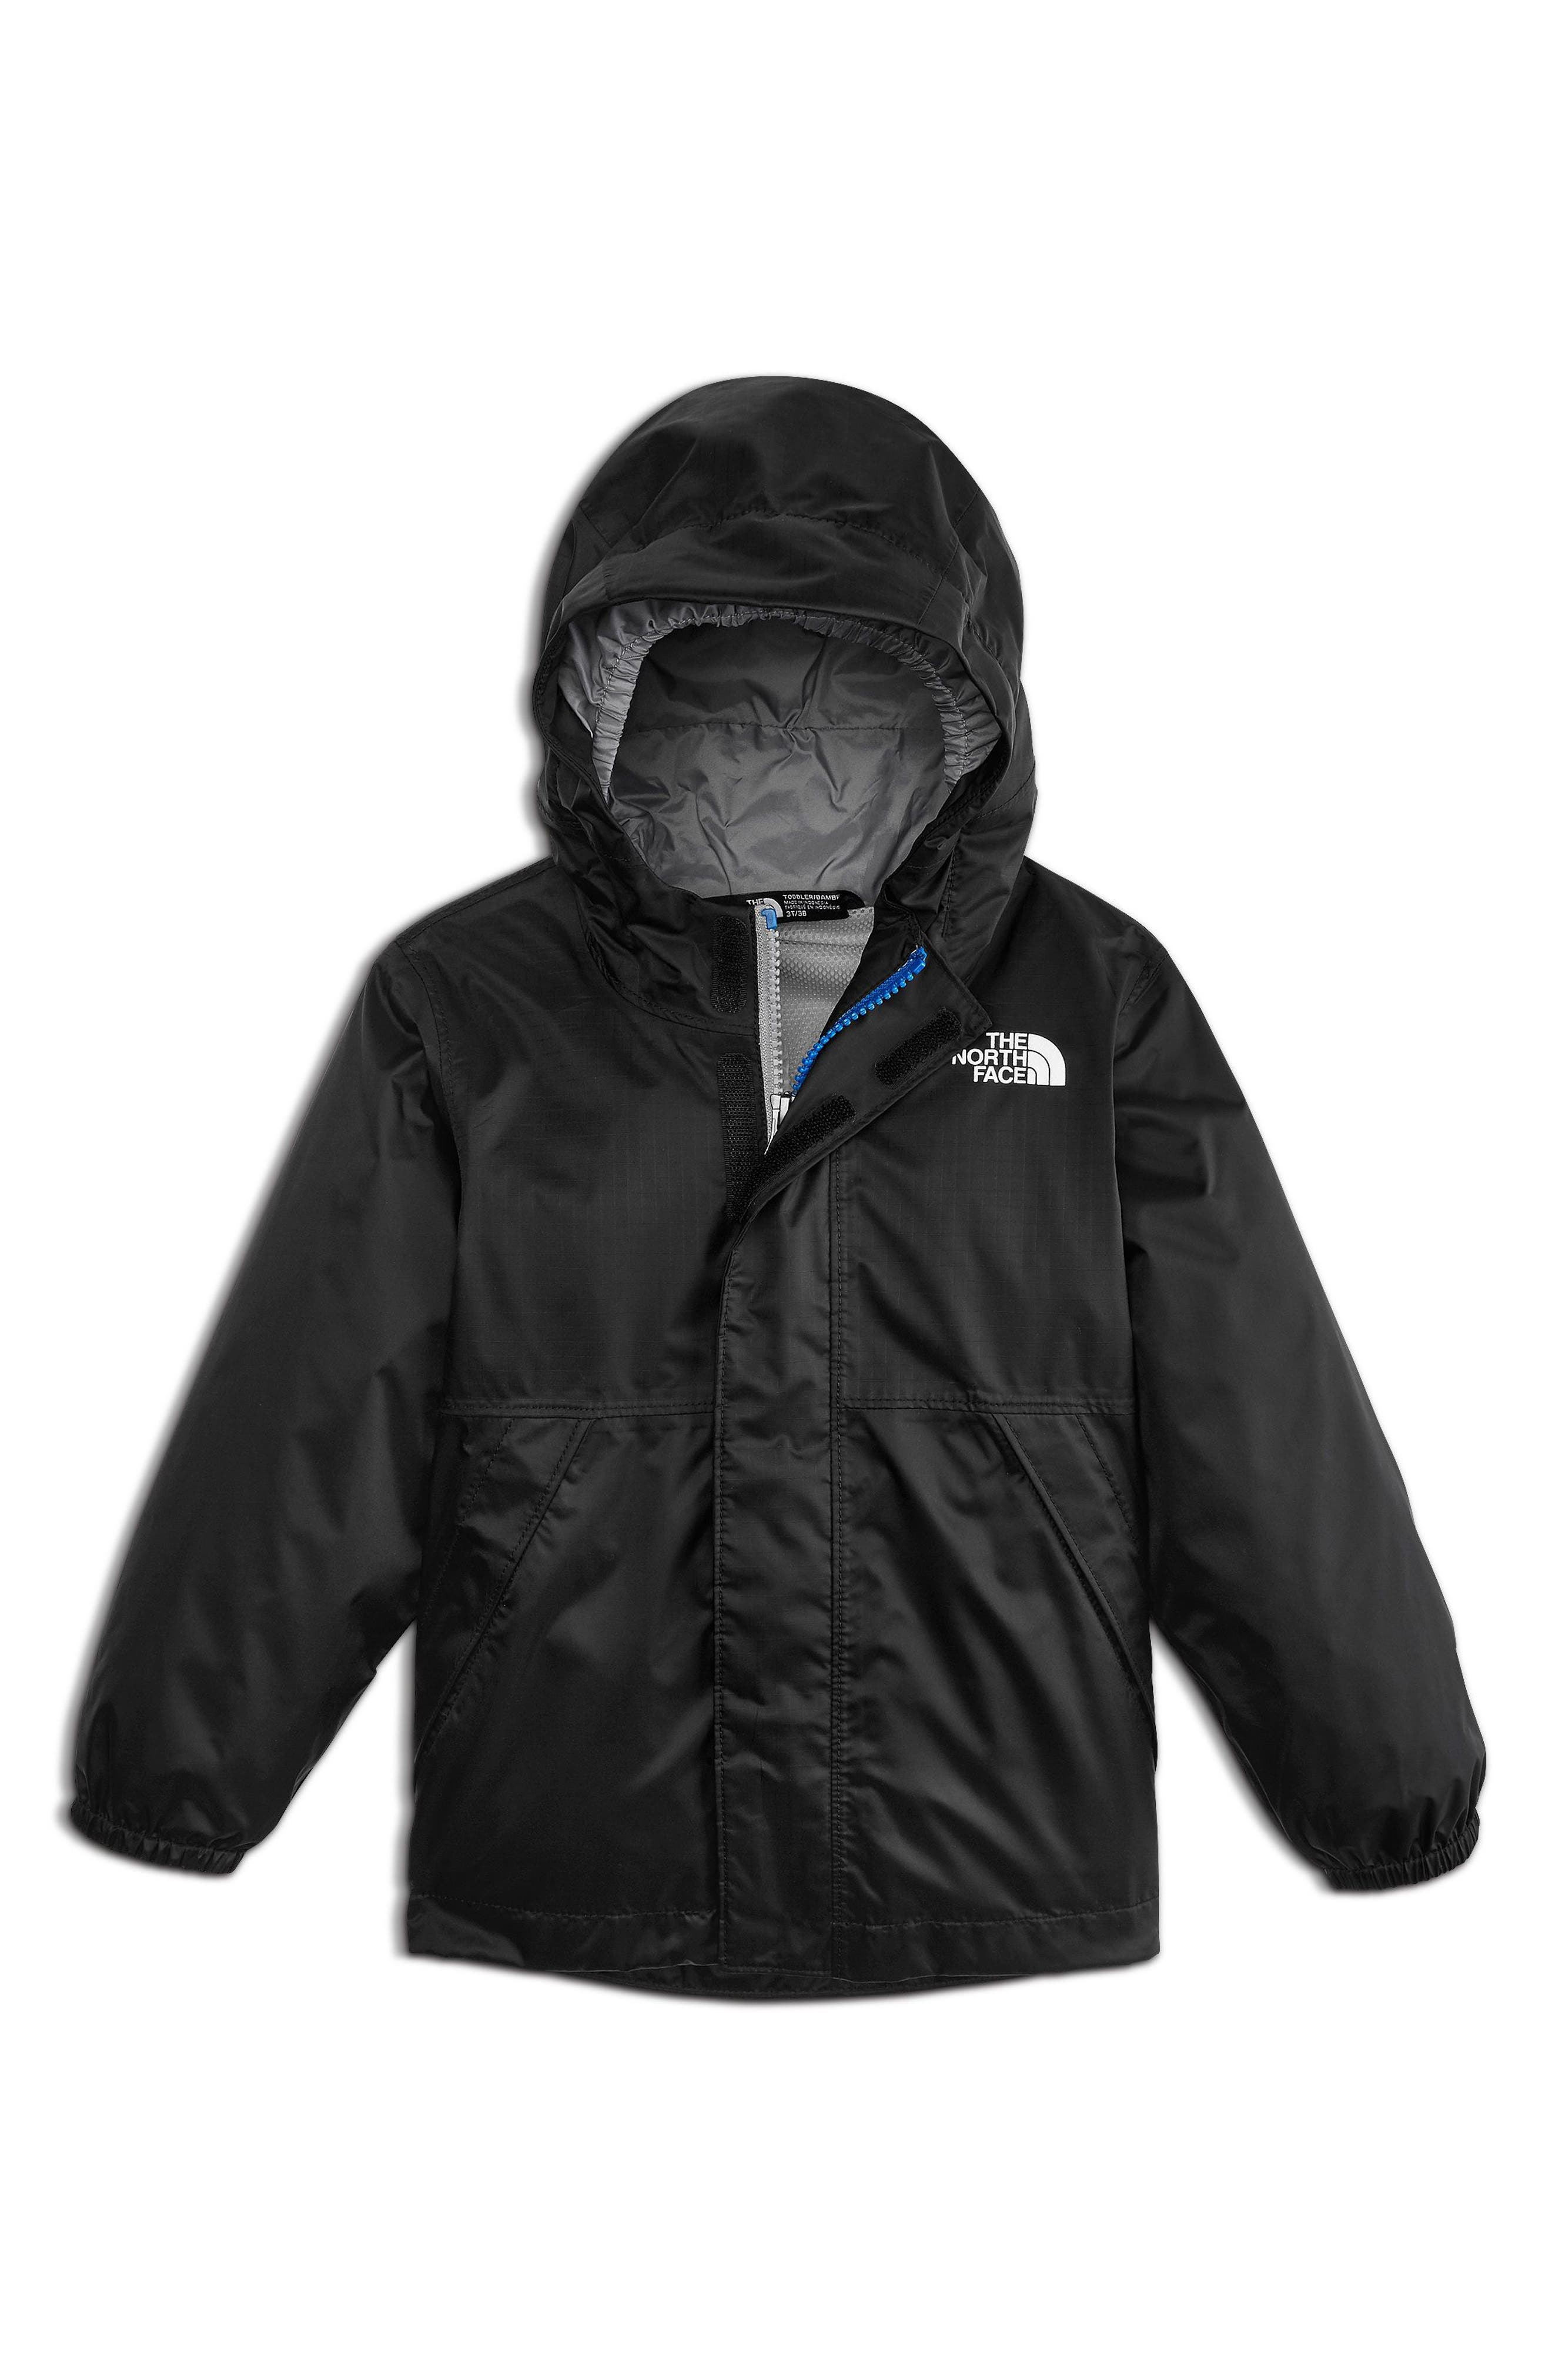 Stormy Rain TriClimate<sup>®</sup> Waterproof 3-in-1 Jacket,                             Main thumbnail 1, color,                             001